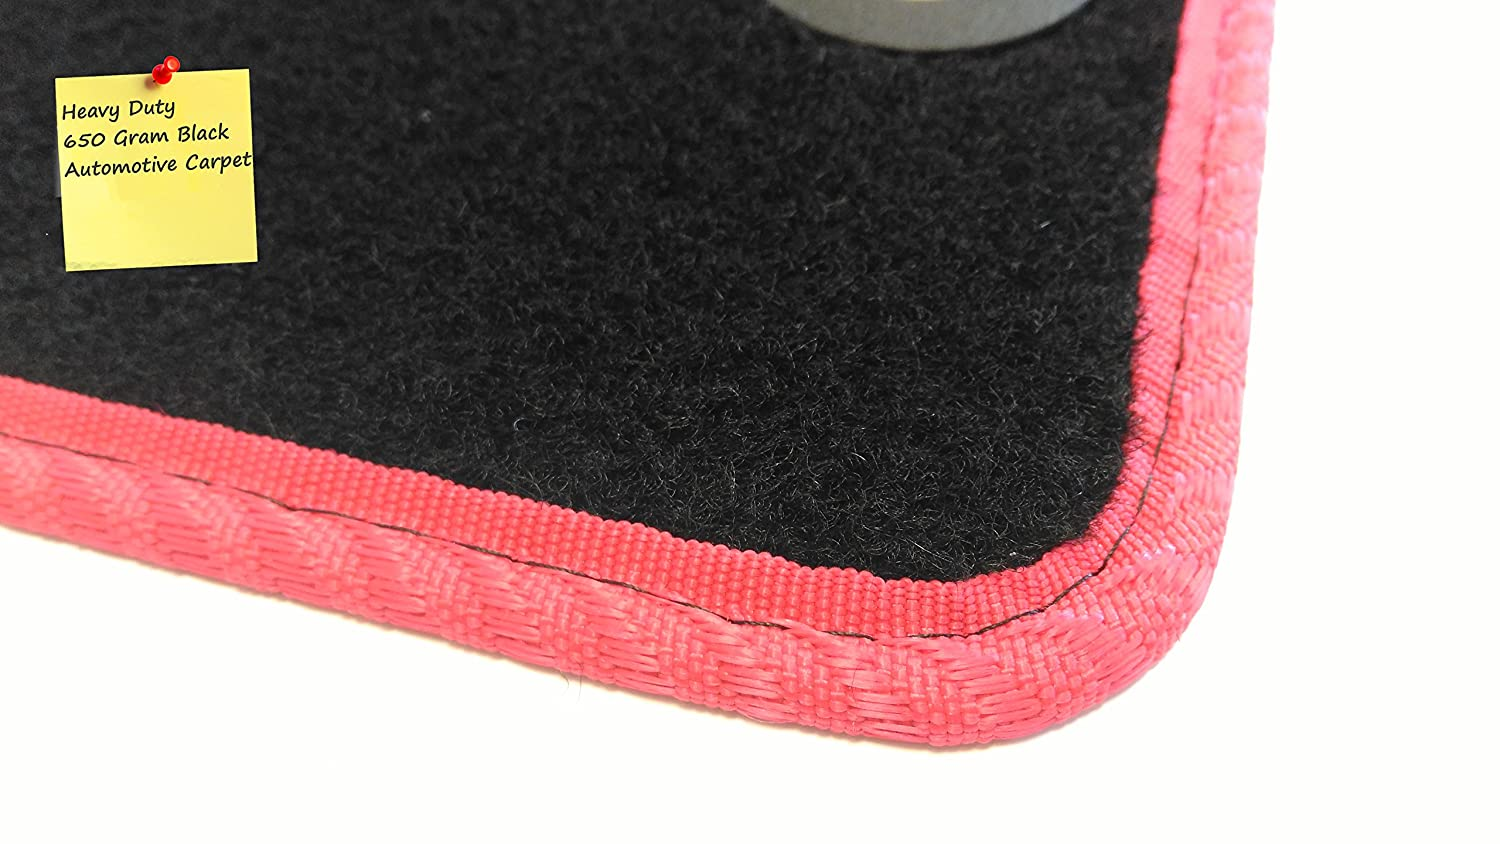 Fully Tailored Car Mats Set of 4 5005950 Black by Connected Essentials Deluxe